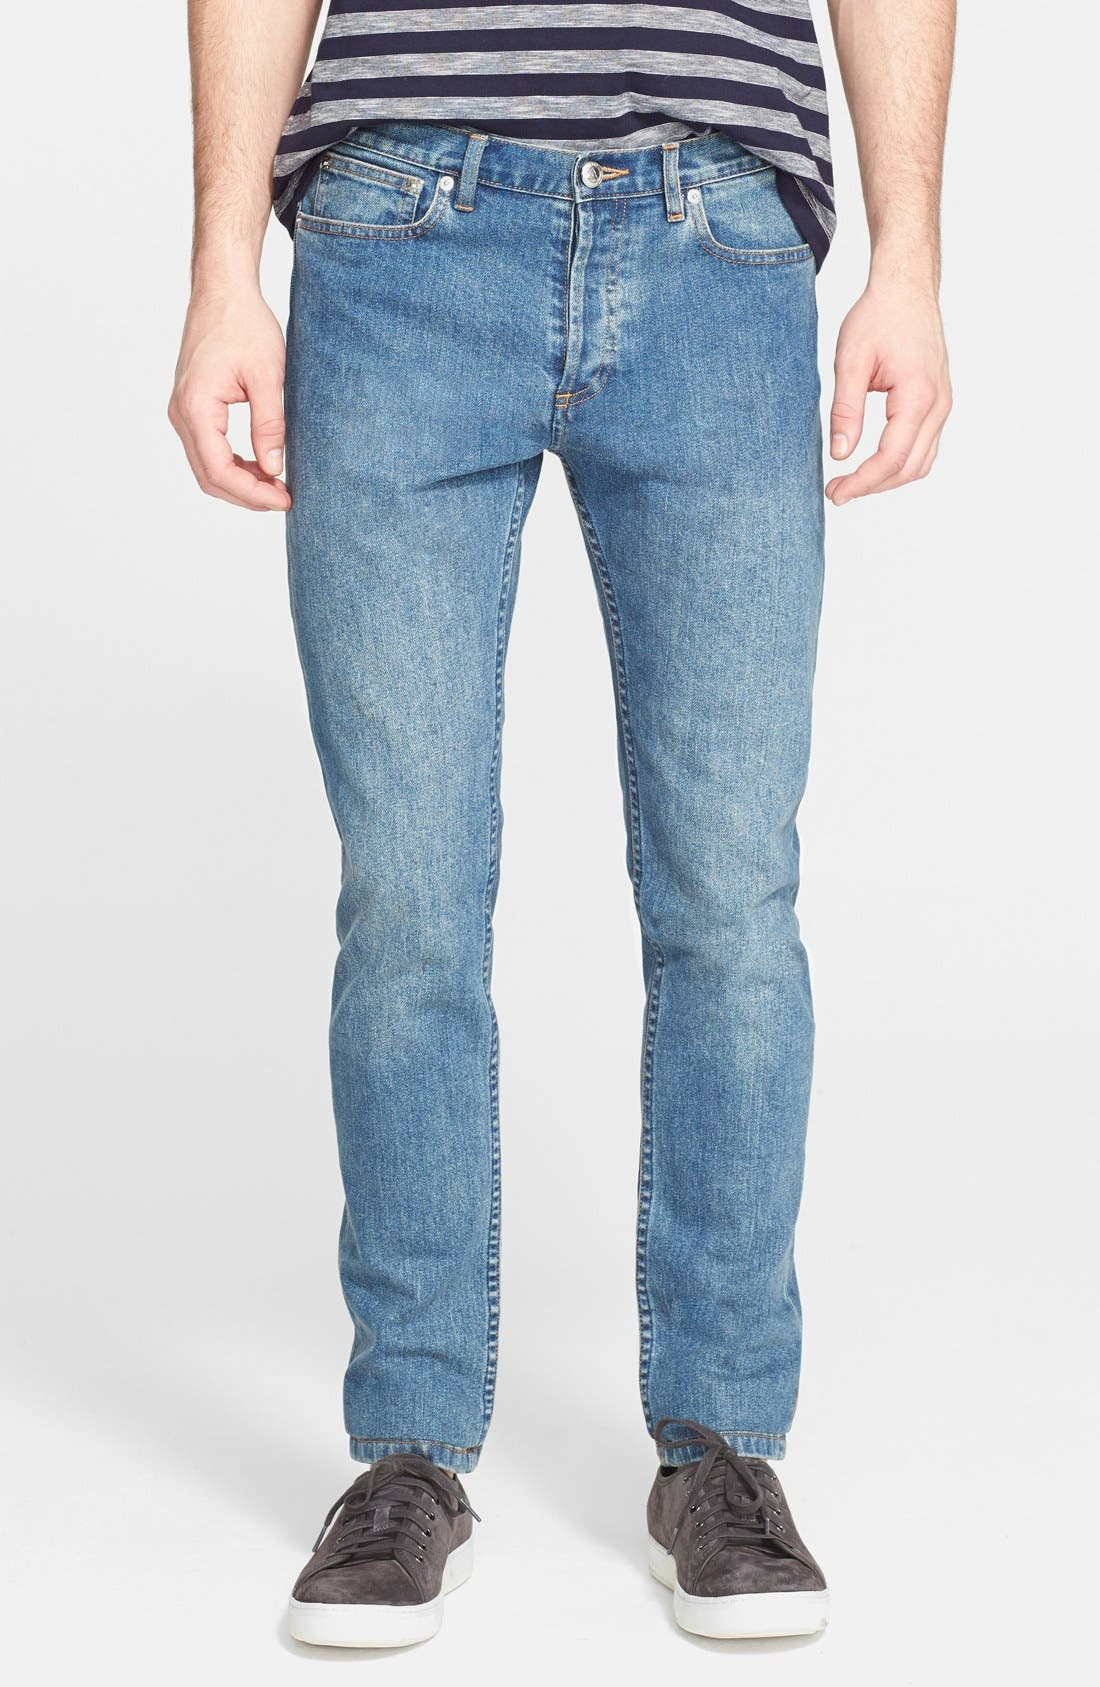 Main Image - A.P.C. 'Petit New Standard' Skinny Fit Jeans (Indigo)